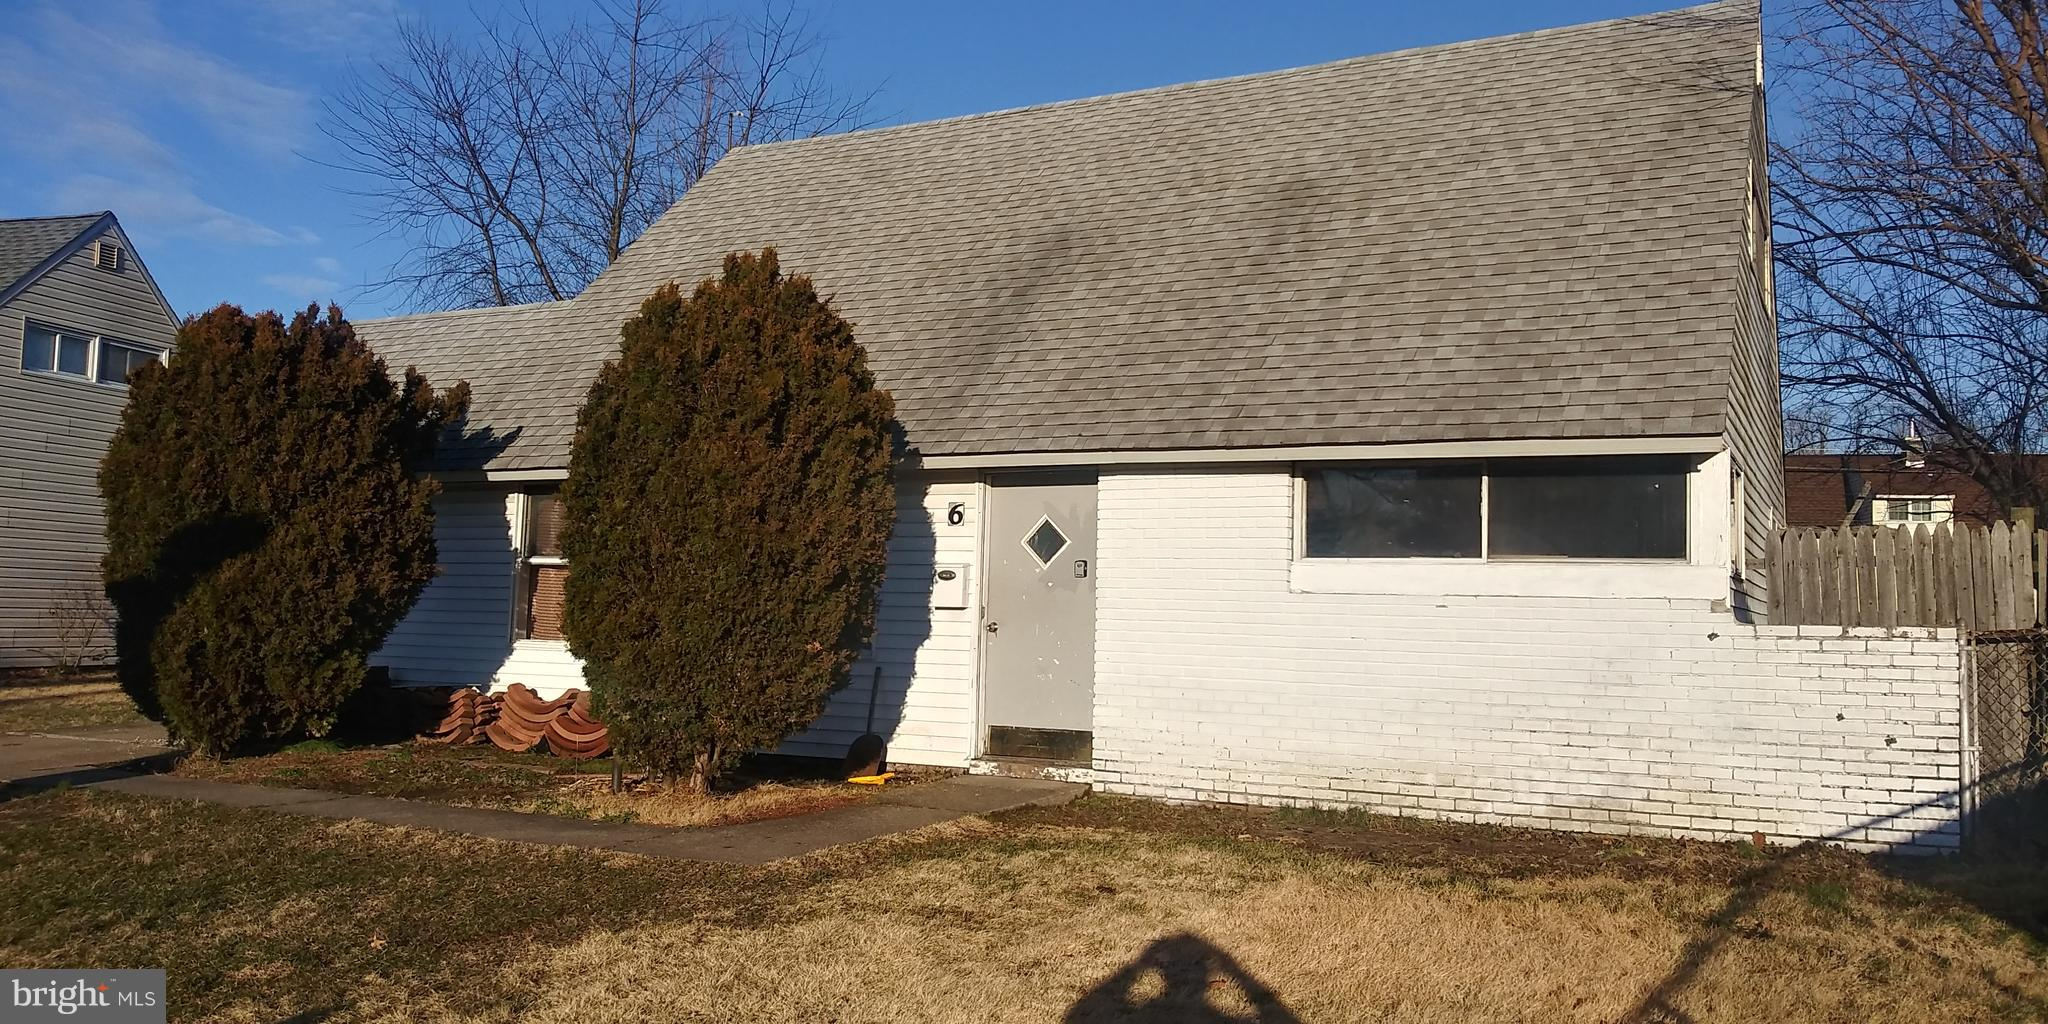 19047 5 Bedroom Home For Sale